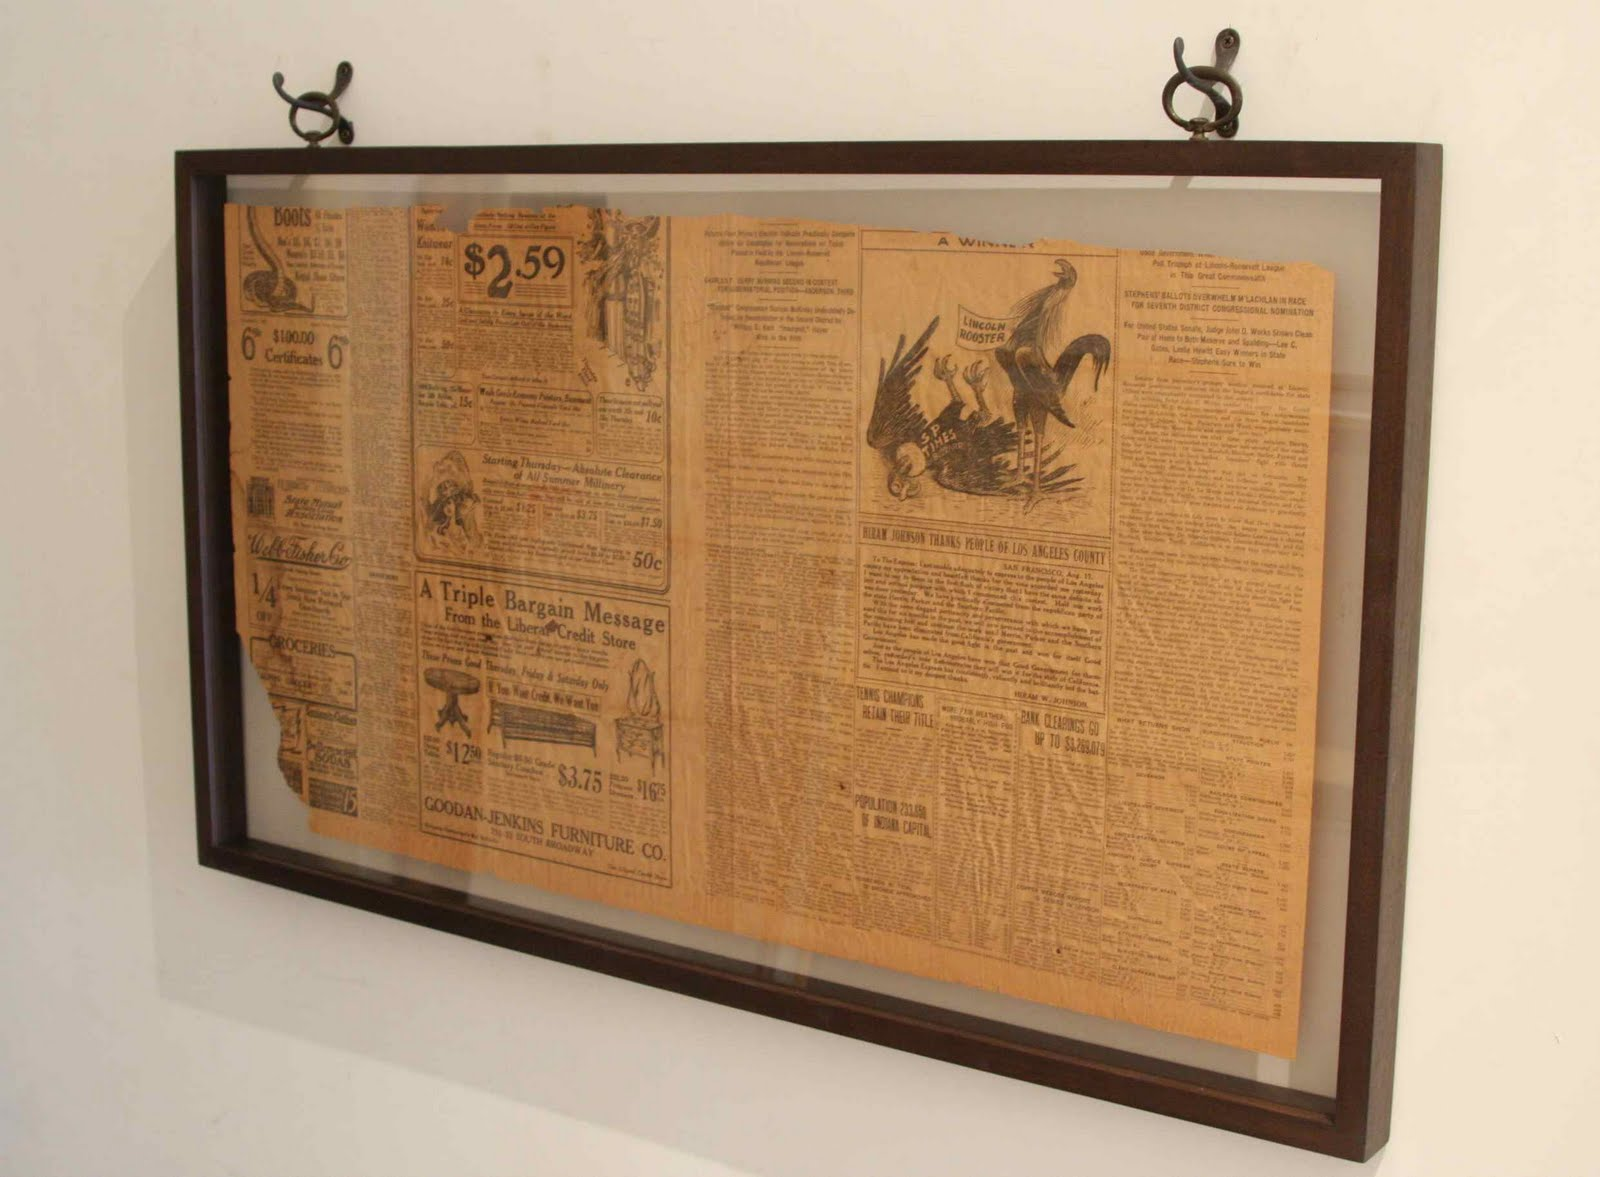 the challenge was to frame this 100 year old piece of newspaper so it could be viewed from both sides it is suspended between uv glass and uv plexiglas